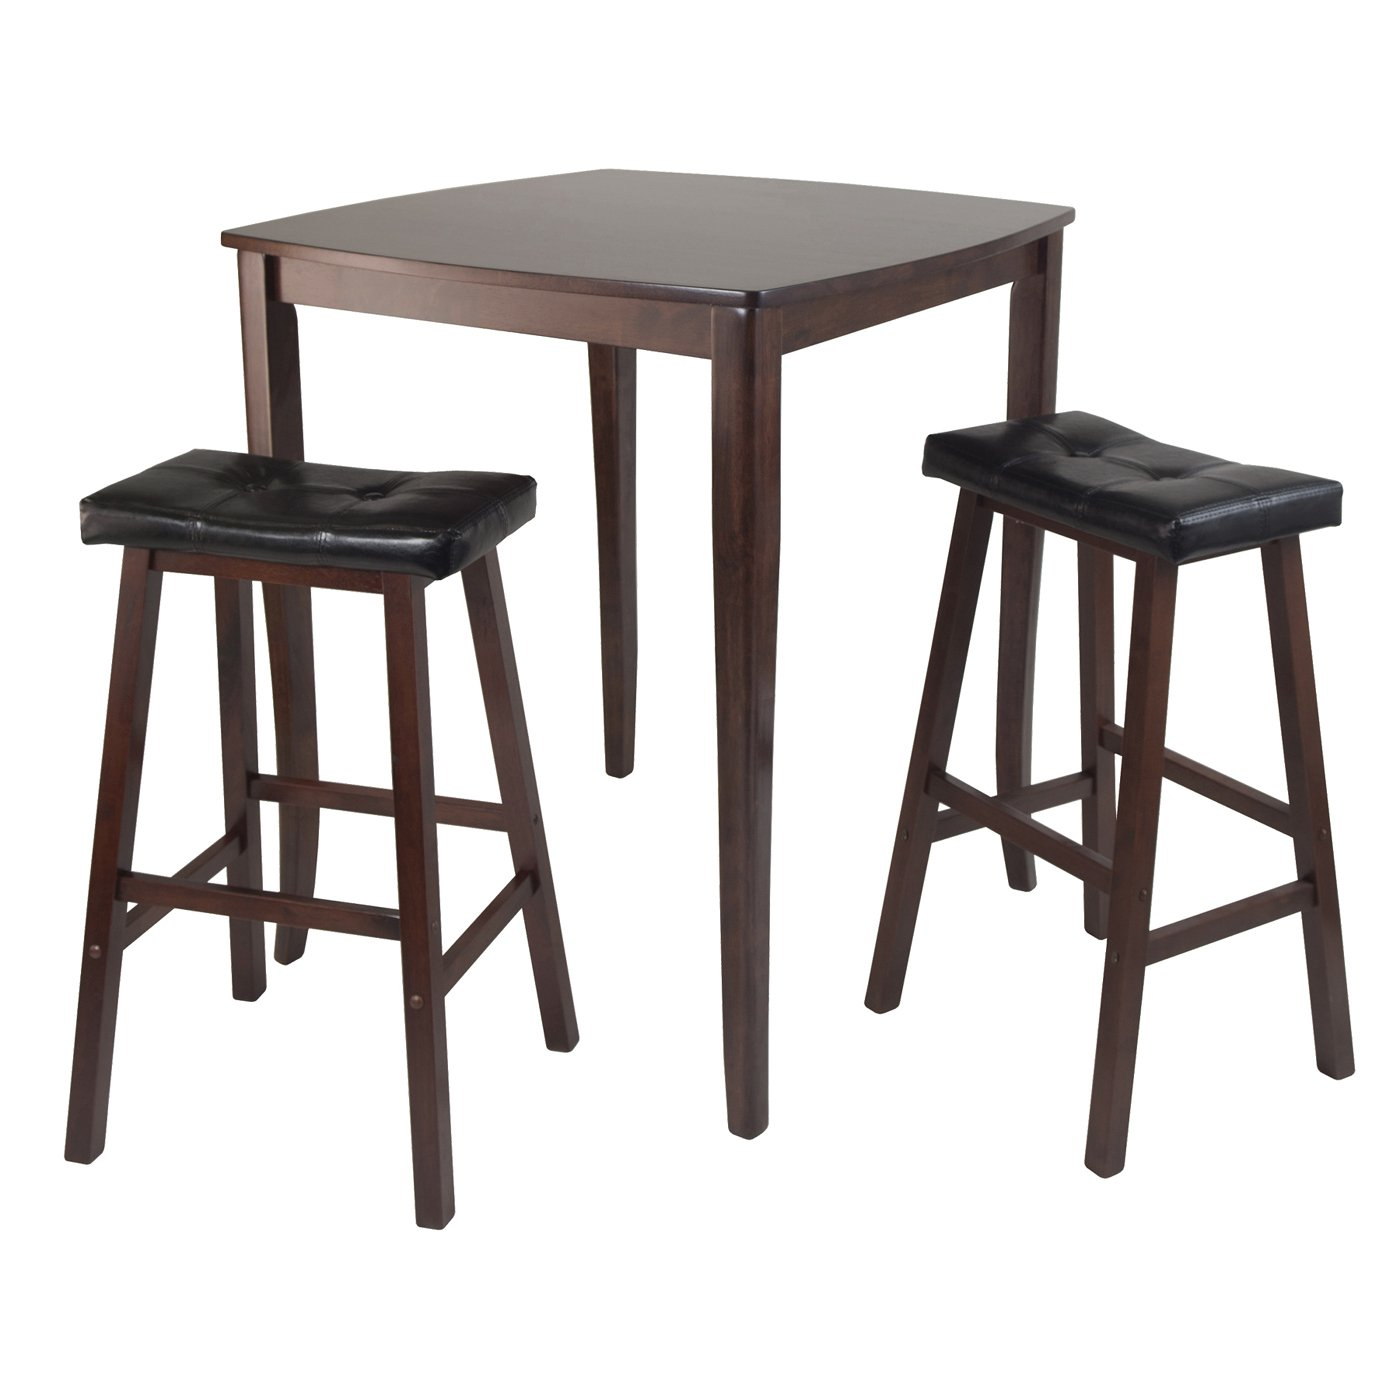 Winsome Wood Inglewood 3 Piece High Pub Table Dining Set In Best And Newest Winsome 3 Piece Counter Height Dining Sets (View 11 of 20)